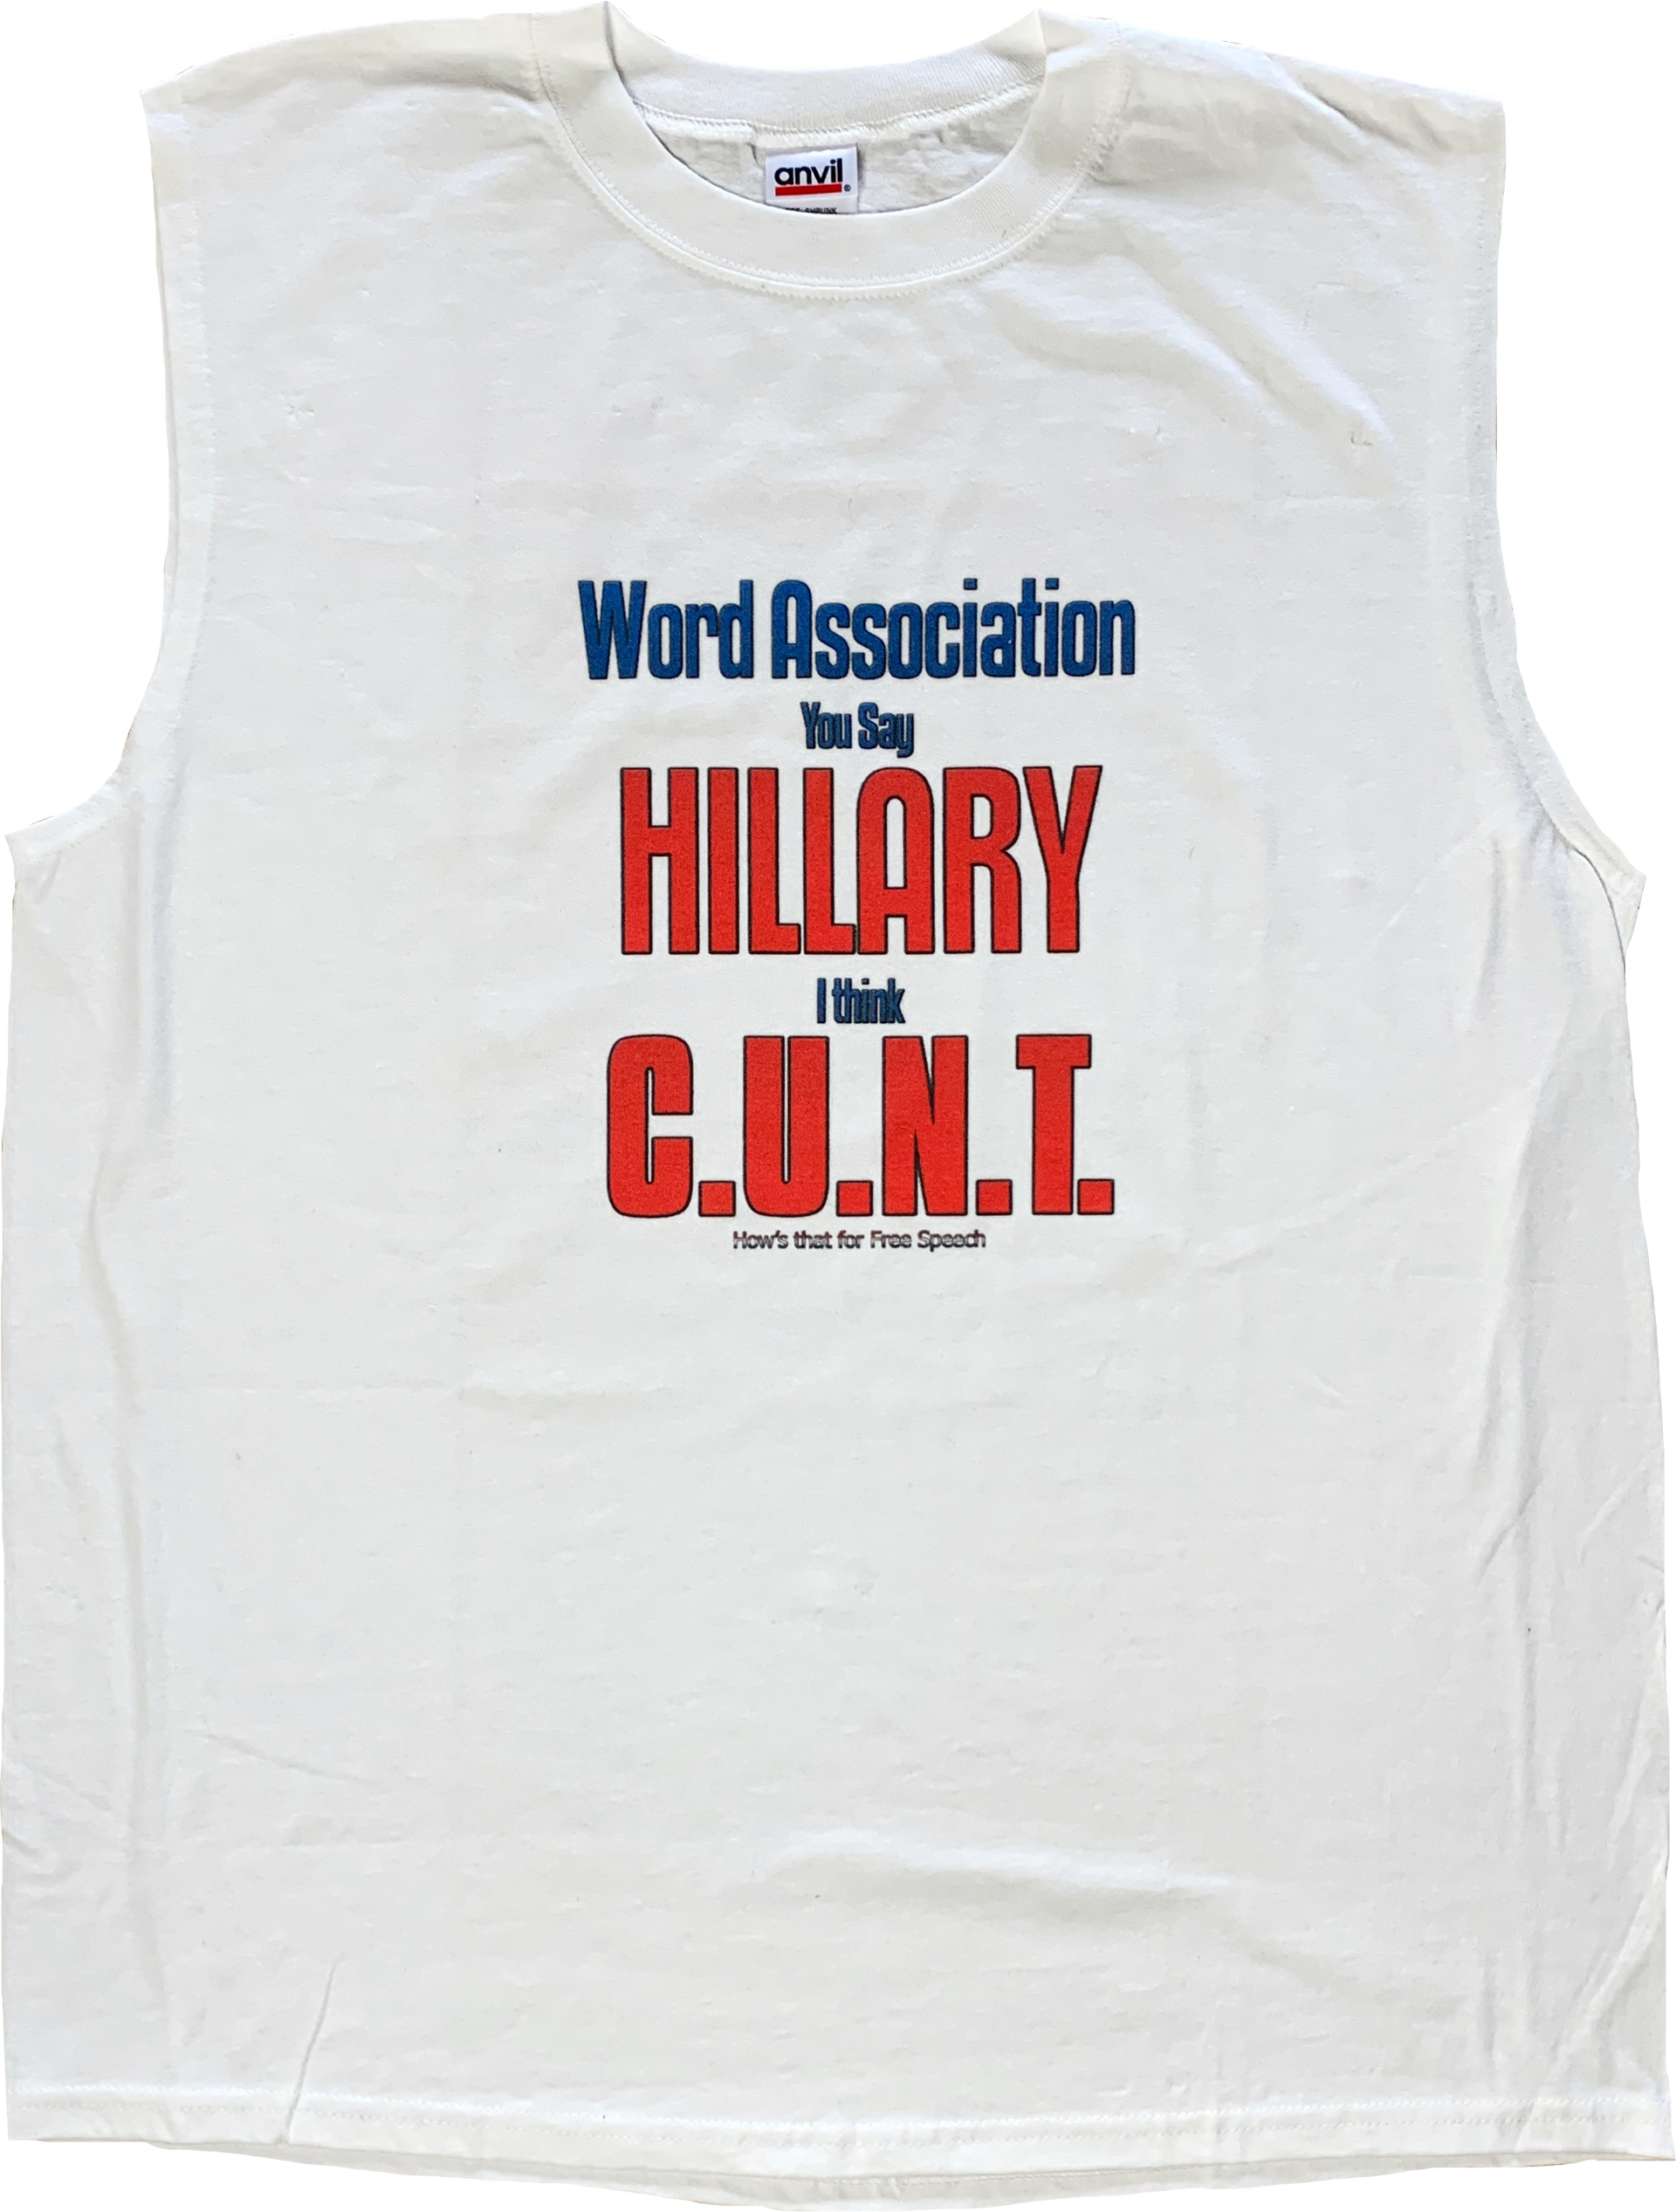 Word Association - You say Hillary I think C.U.N.T (How's that for Free Speech)